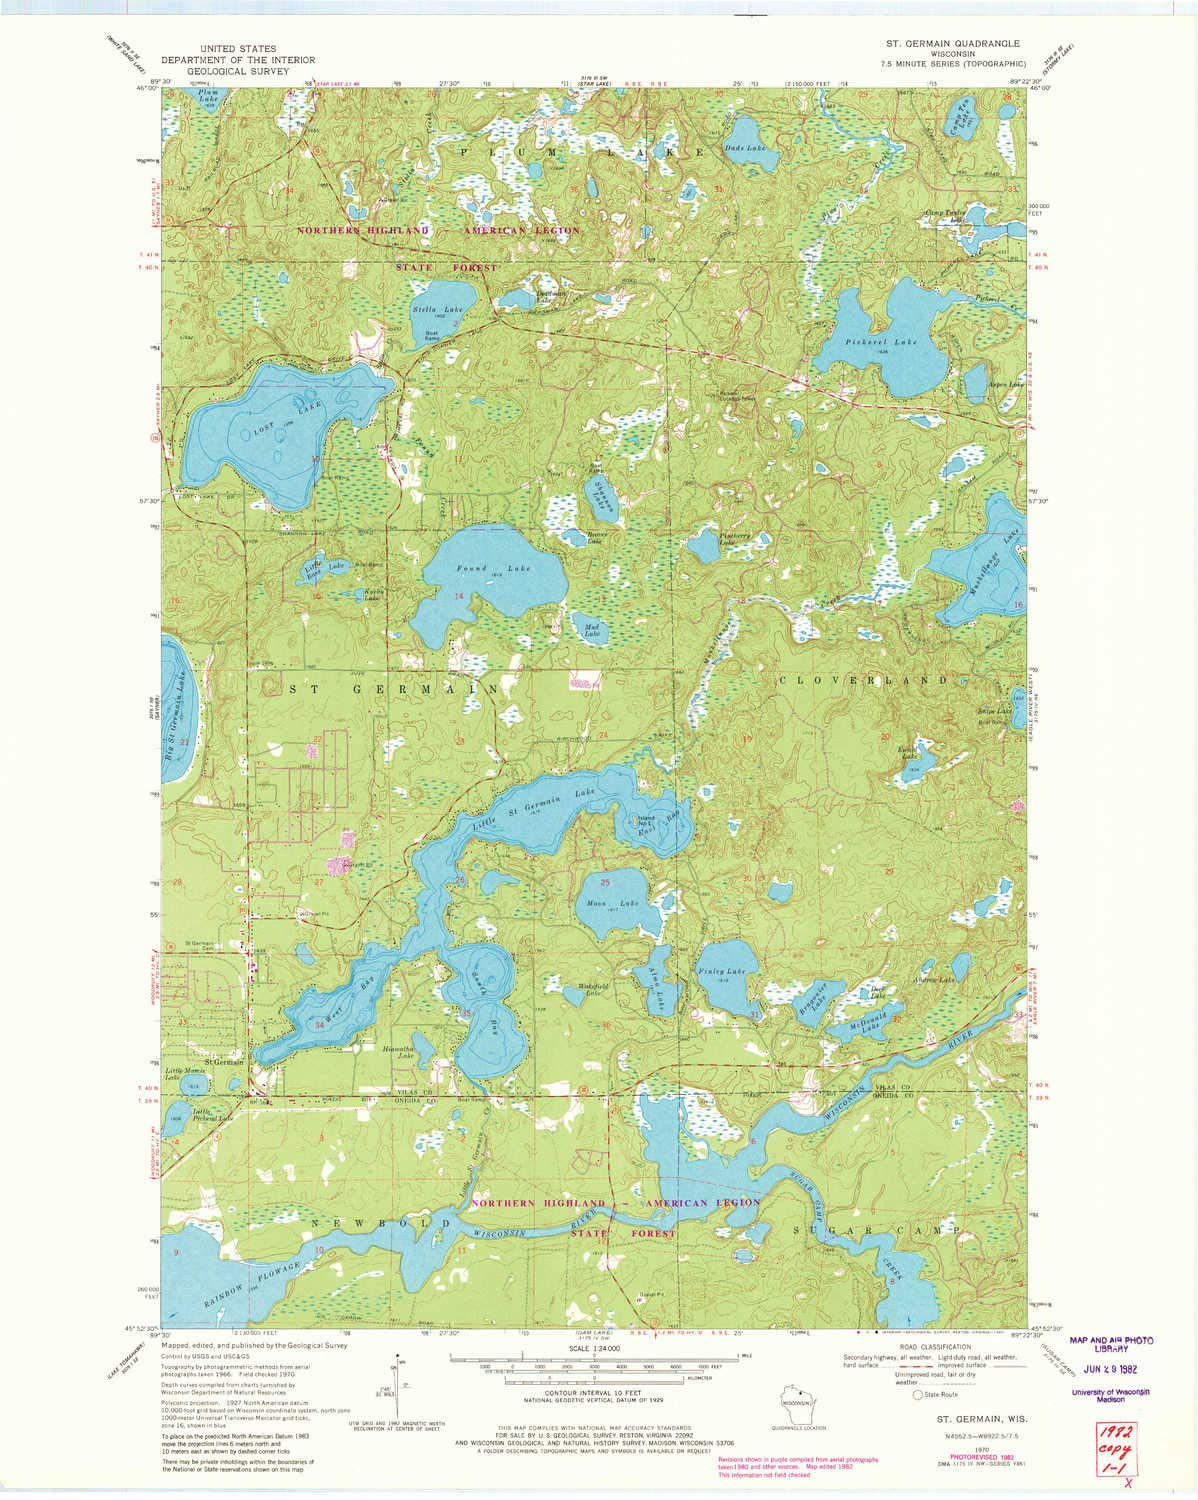 Historical Updated 1982 27.56 x 22.01 in 7.5 X 7.5 Minute 1:24000 Scale YellowMaps St Germain WI topo map 1970